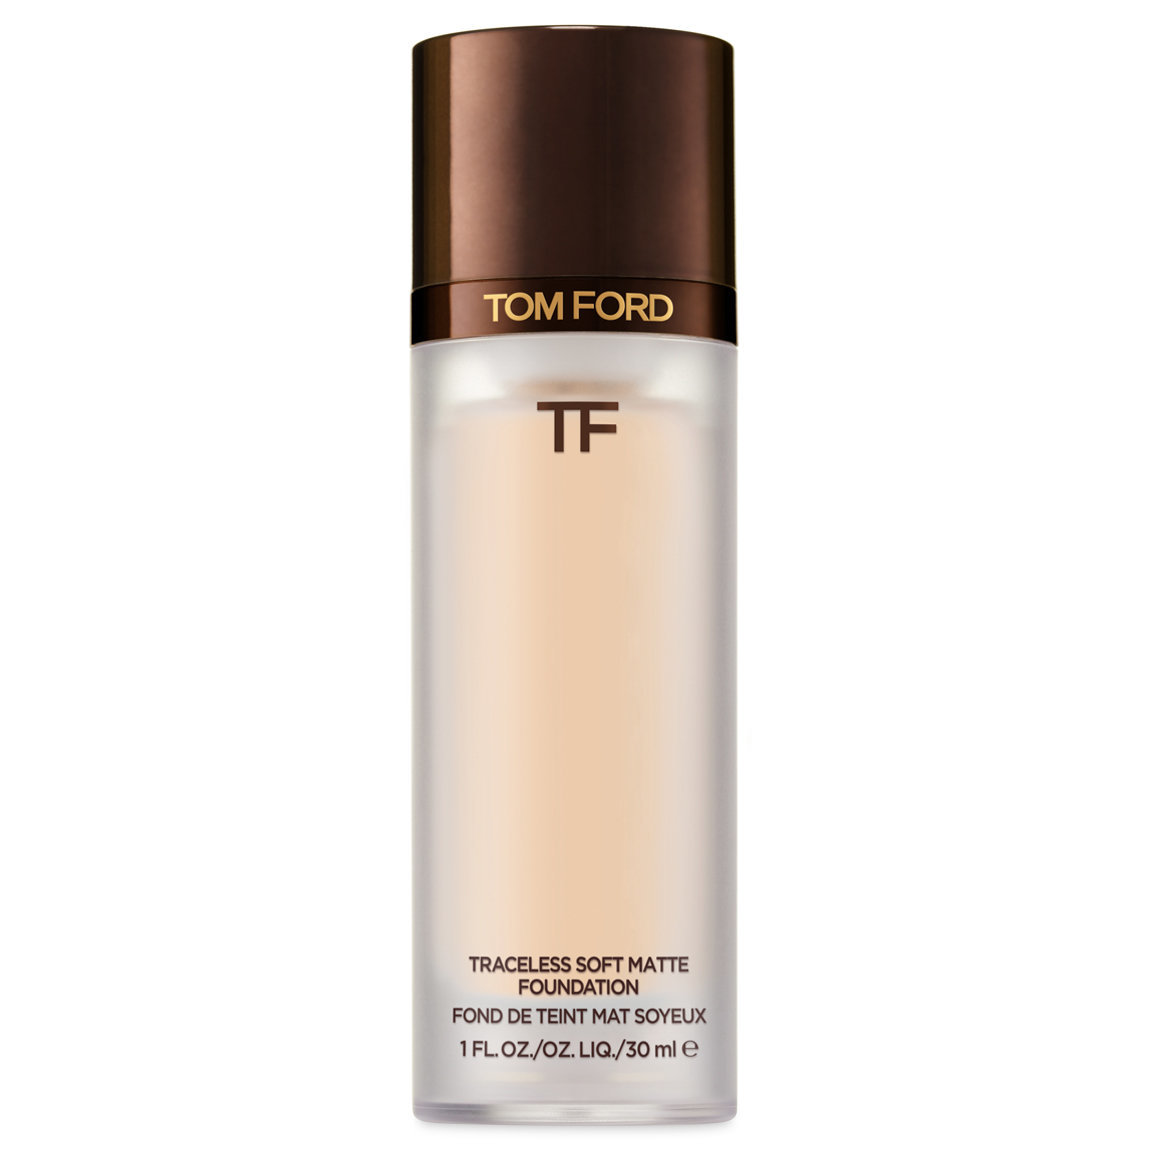 TOM FORD Traceless Soft Matte Foundation 0.0 Pearl alternative view 1.